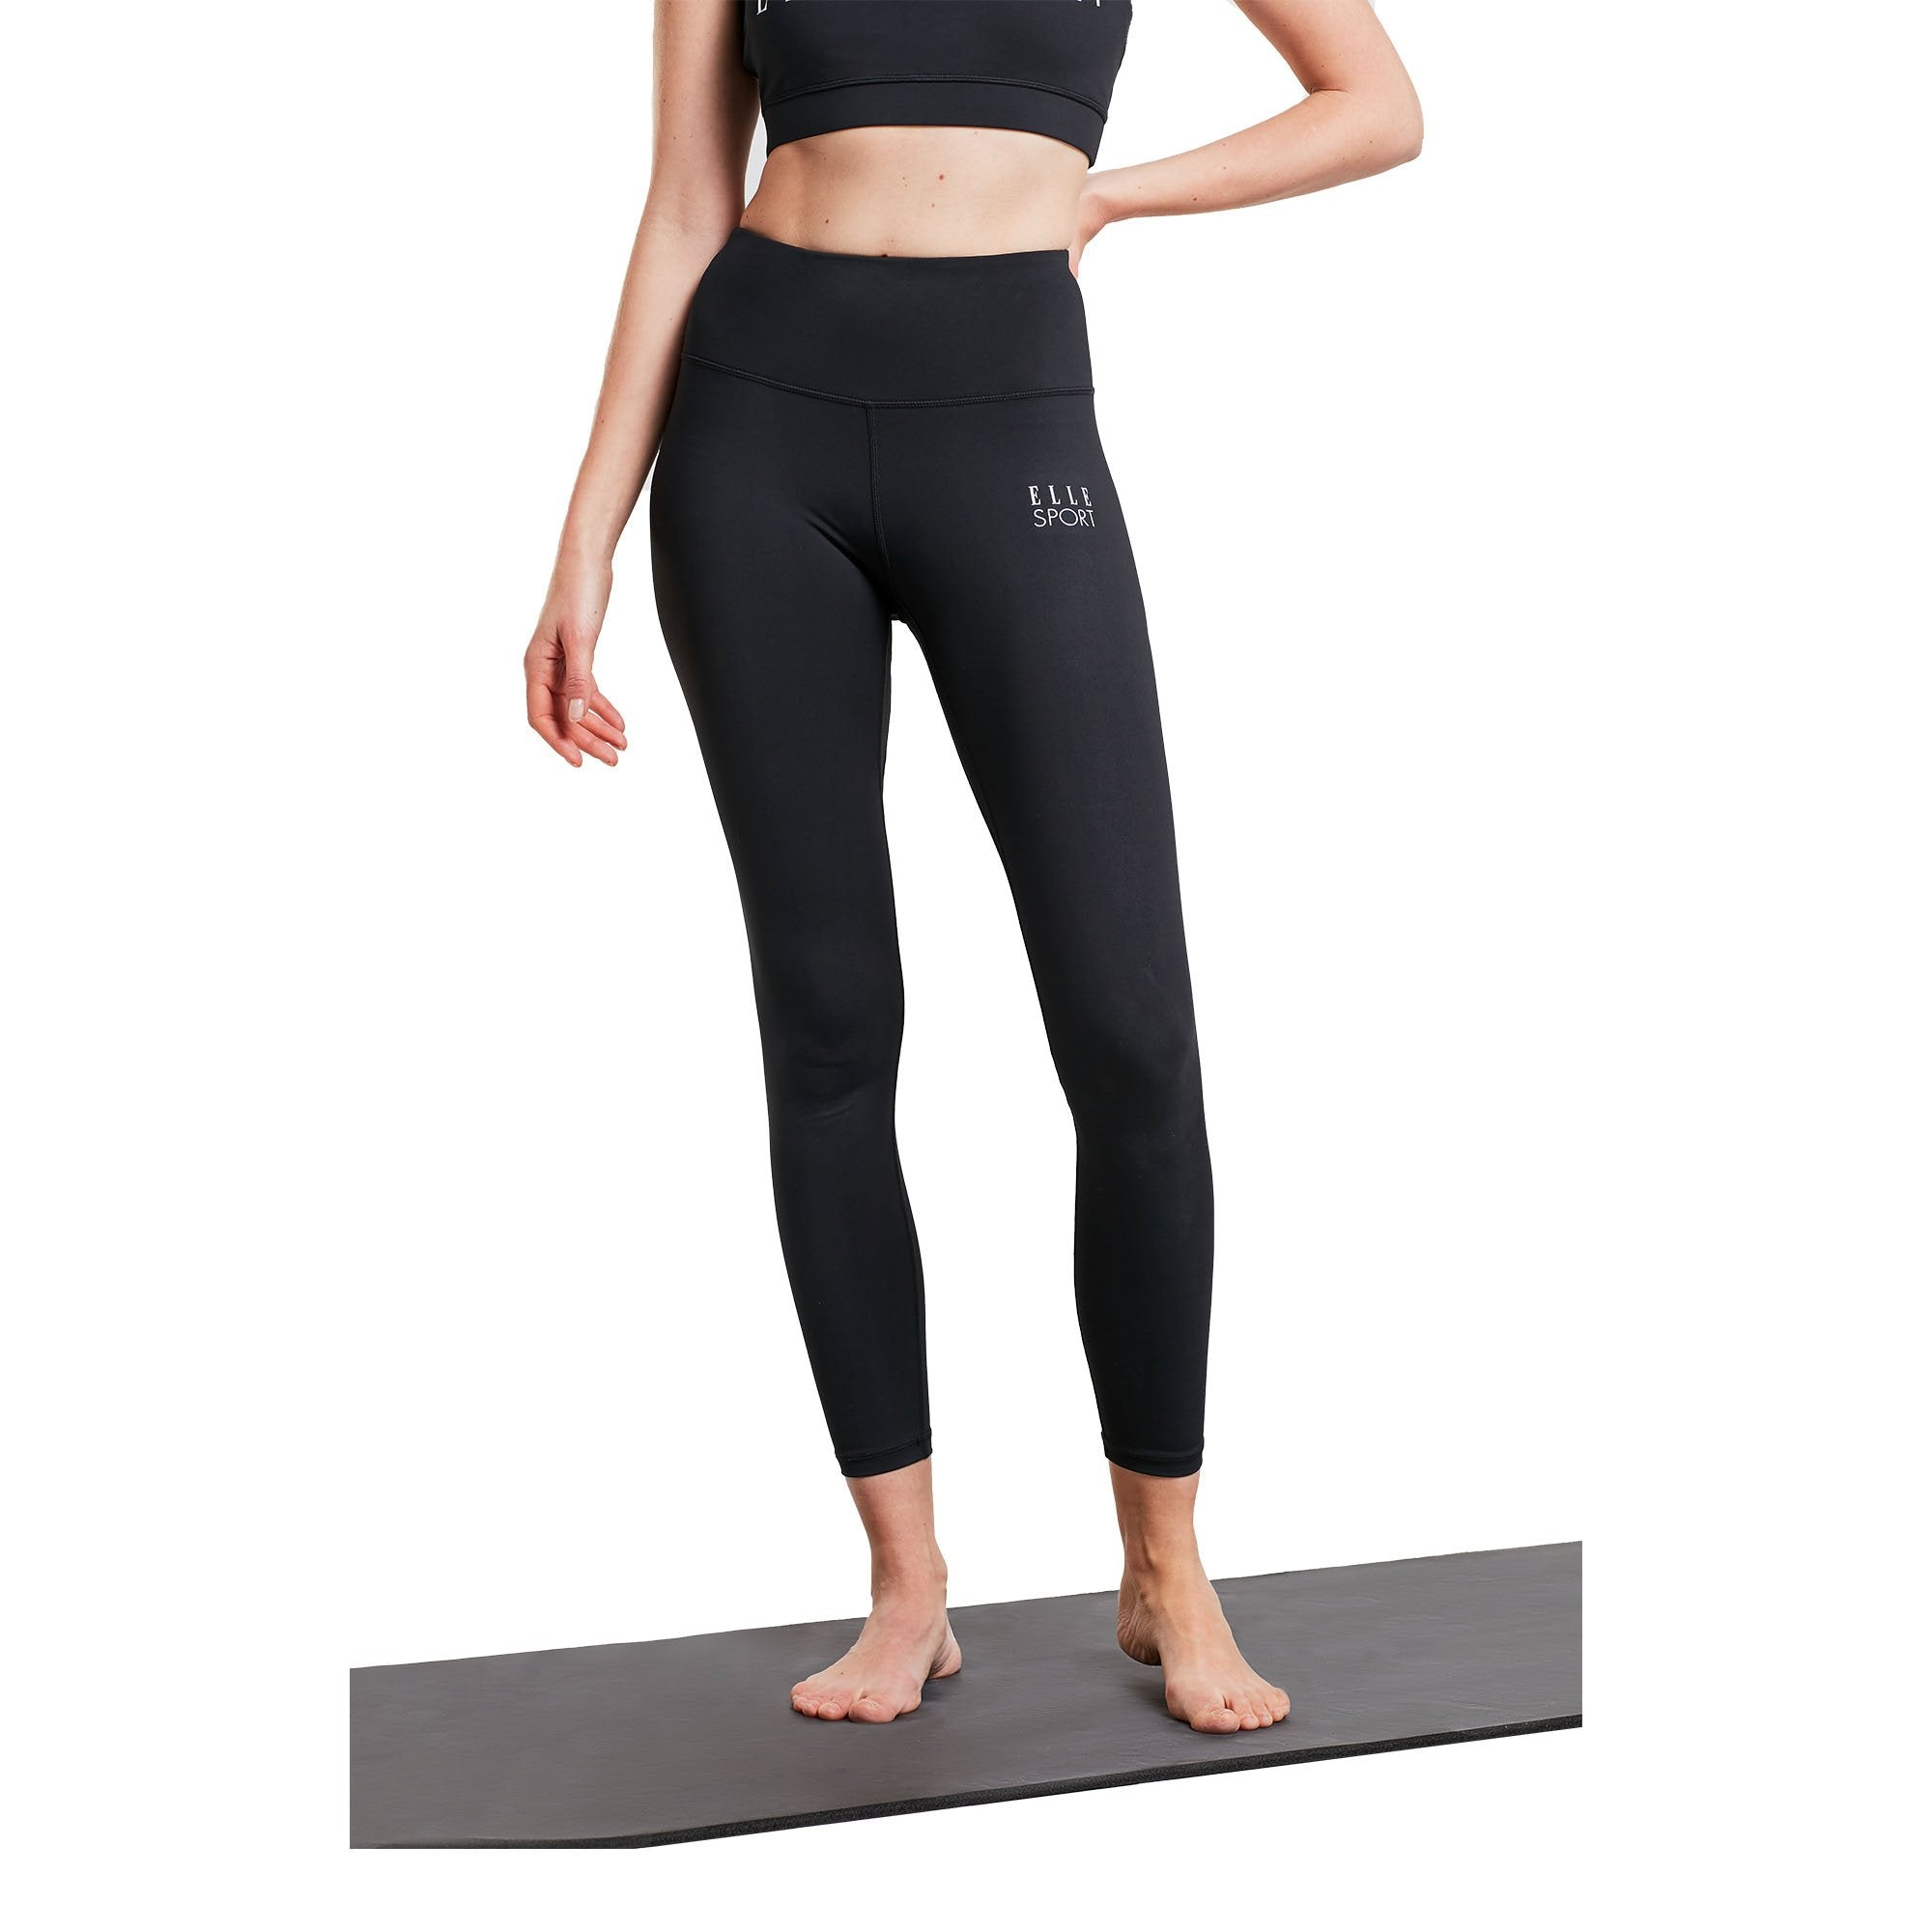 Image of Elle Sport Performance Tights